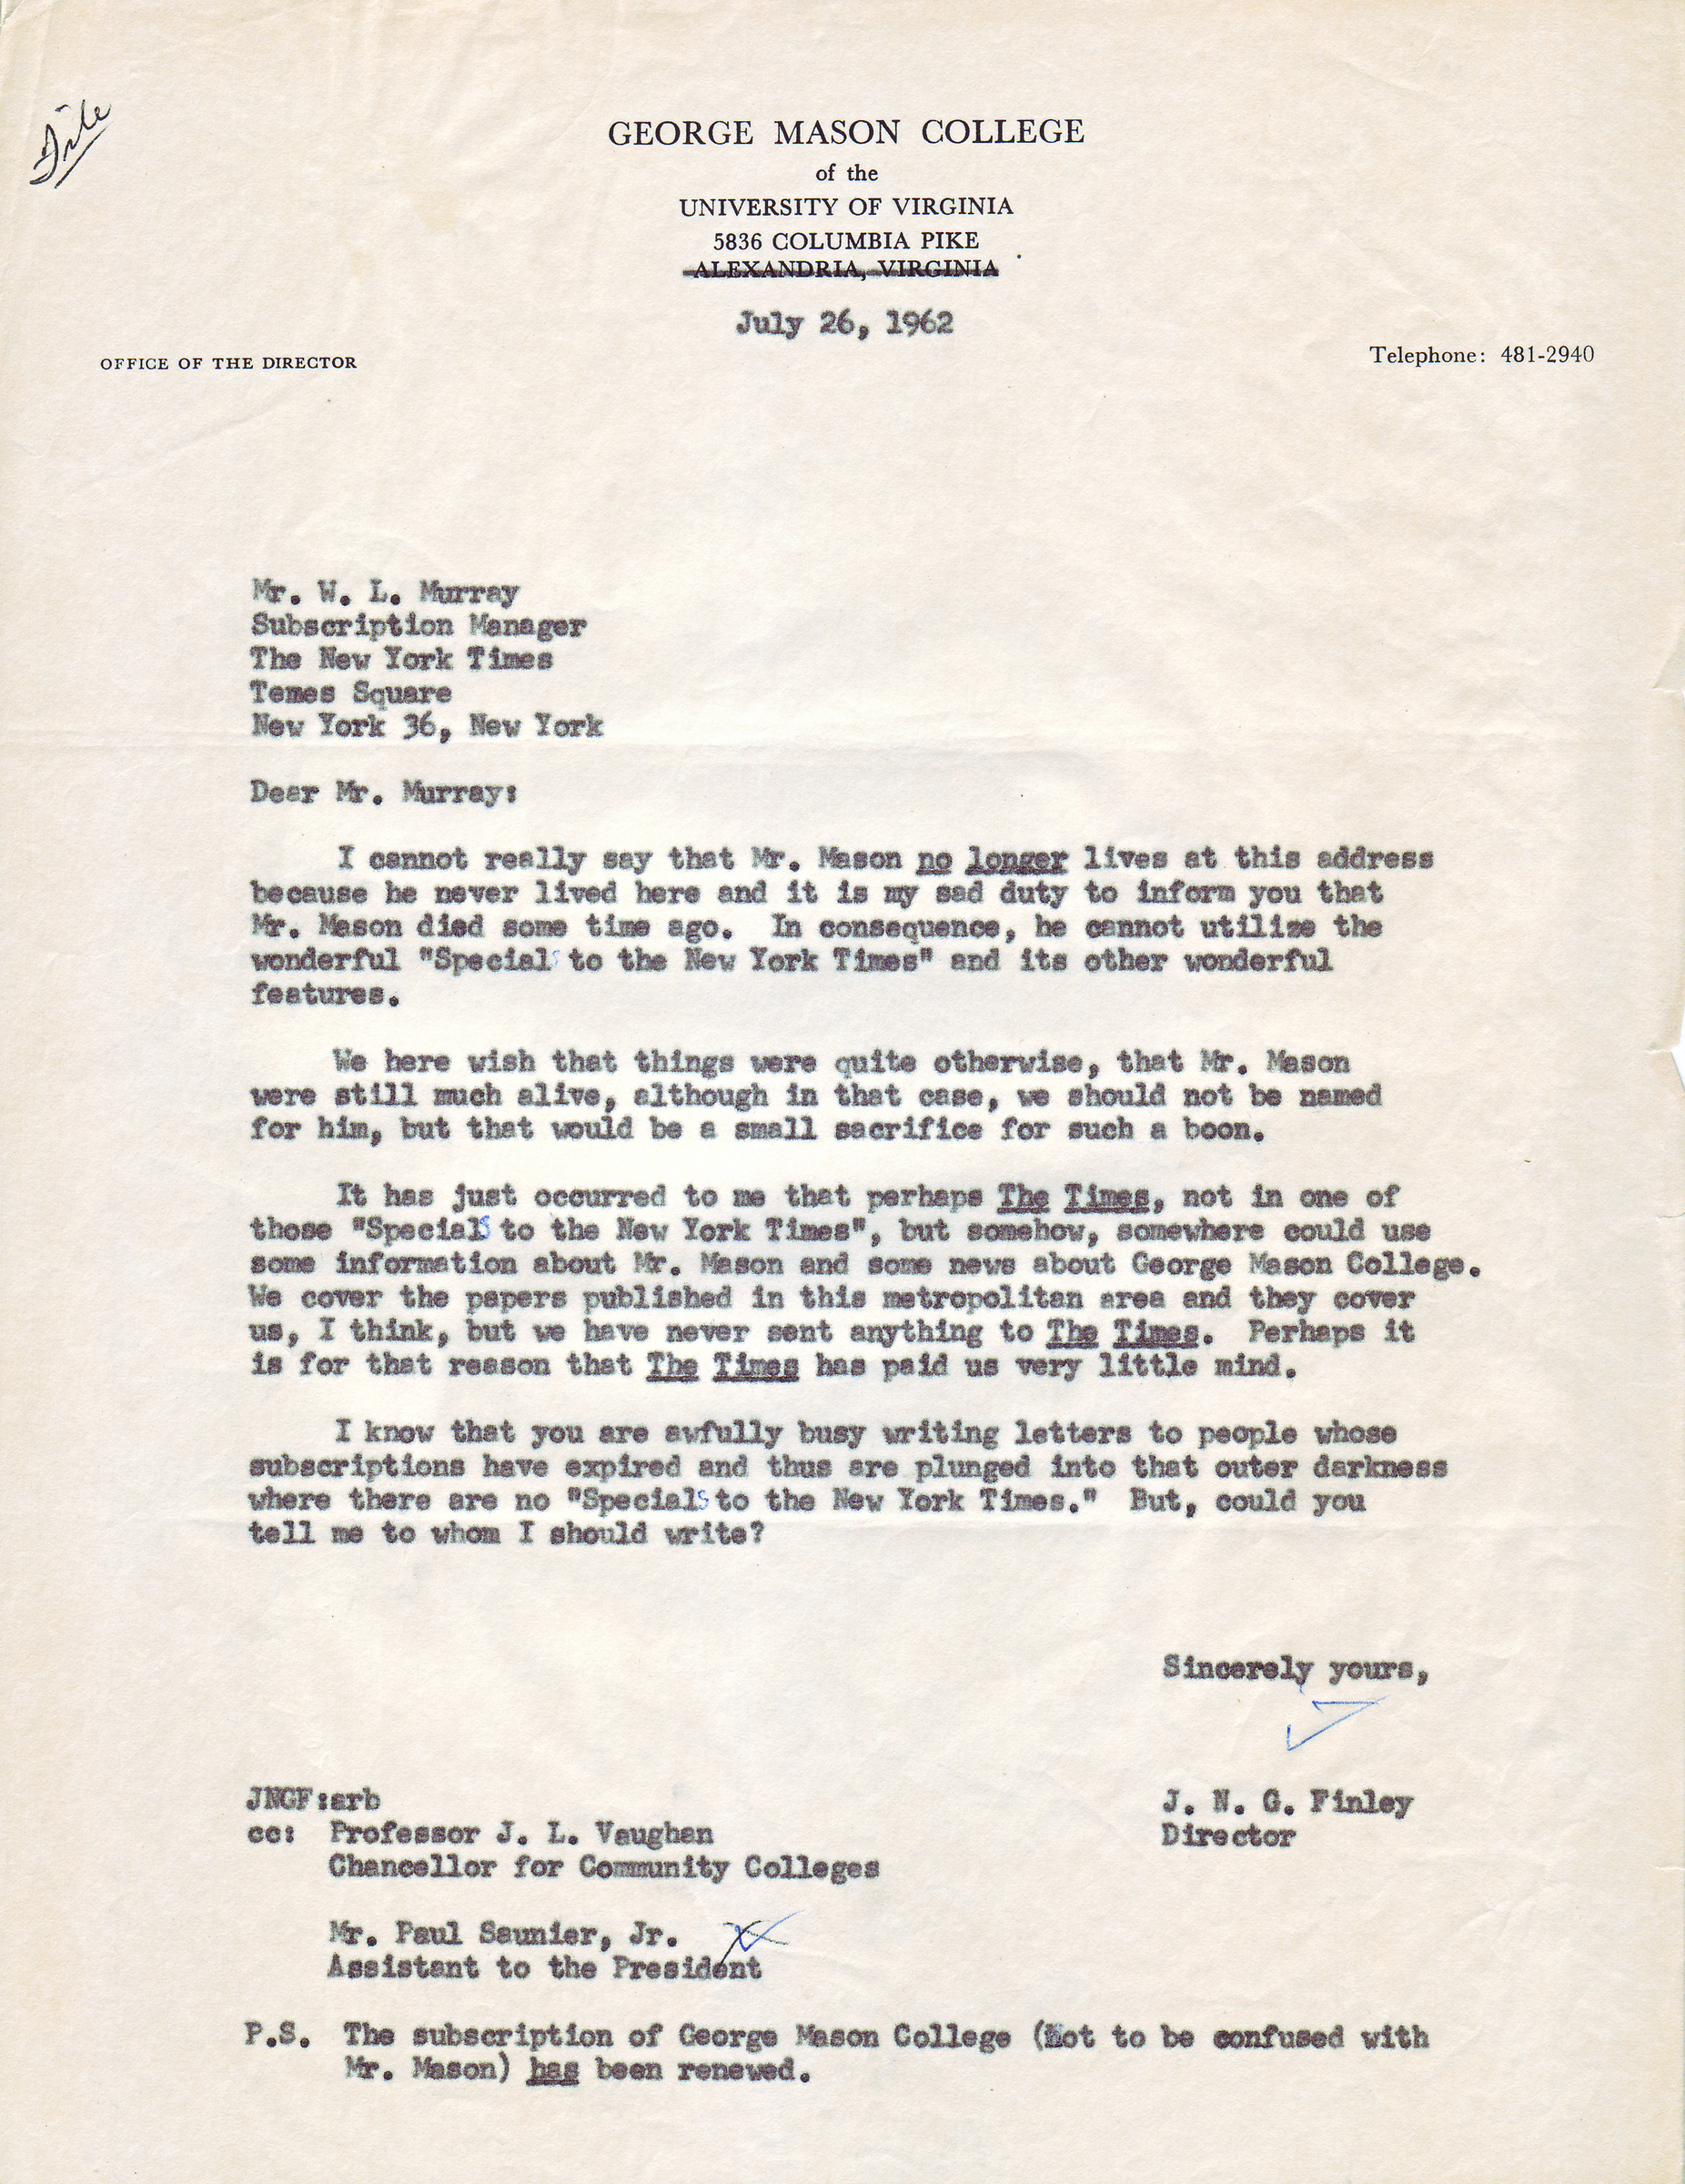 J.N.G. Finley to Mr. W.L. Murray, July 26, 1962.